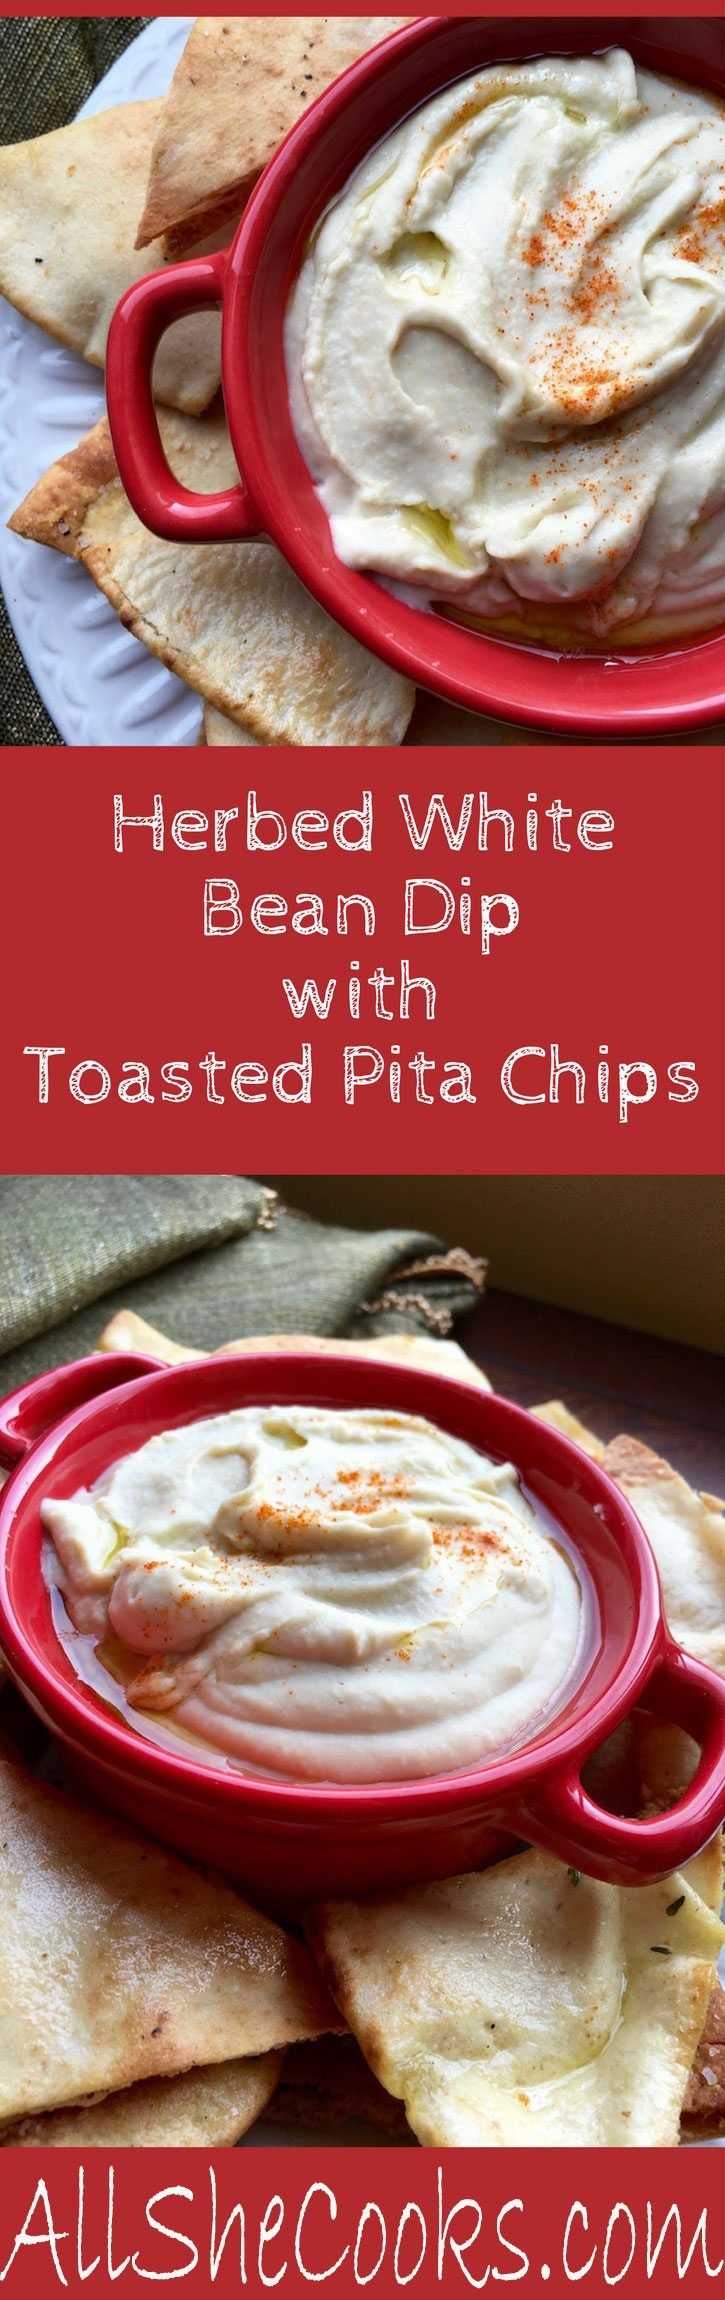 Herbed White Bean Dip with Toasted Pita Chips is a simple dip recipe that is perfect to serve at a holiday party. Appetizer recipes are always winners.